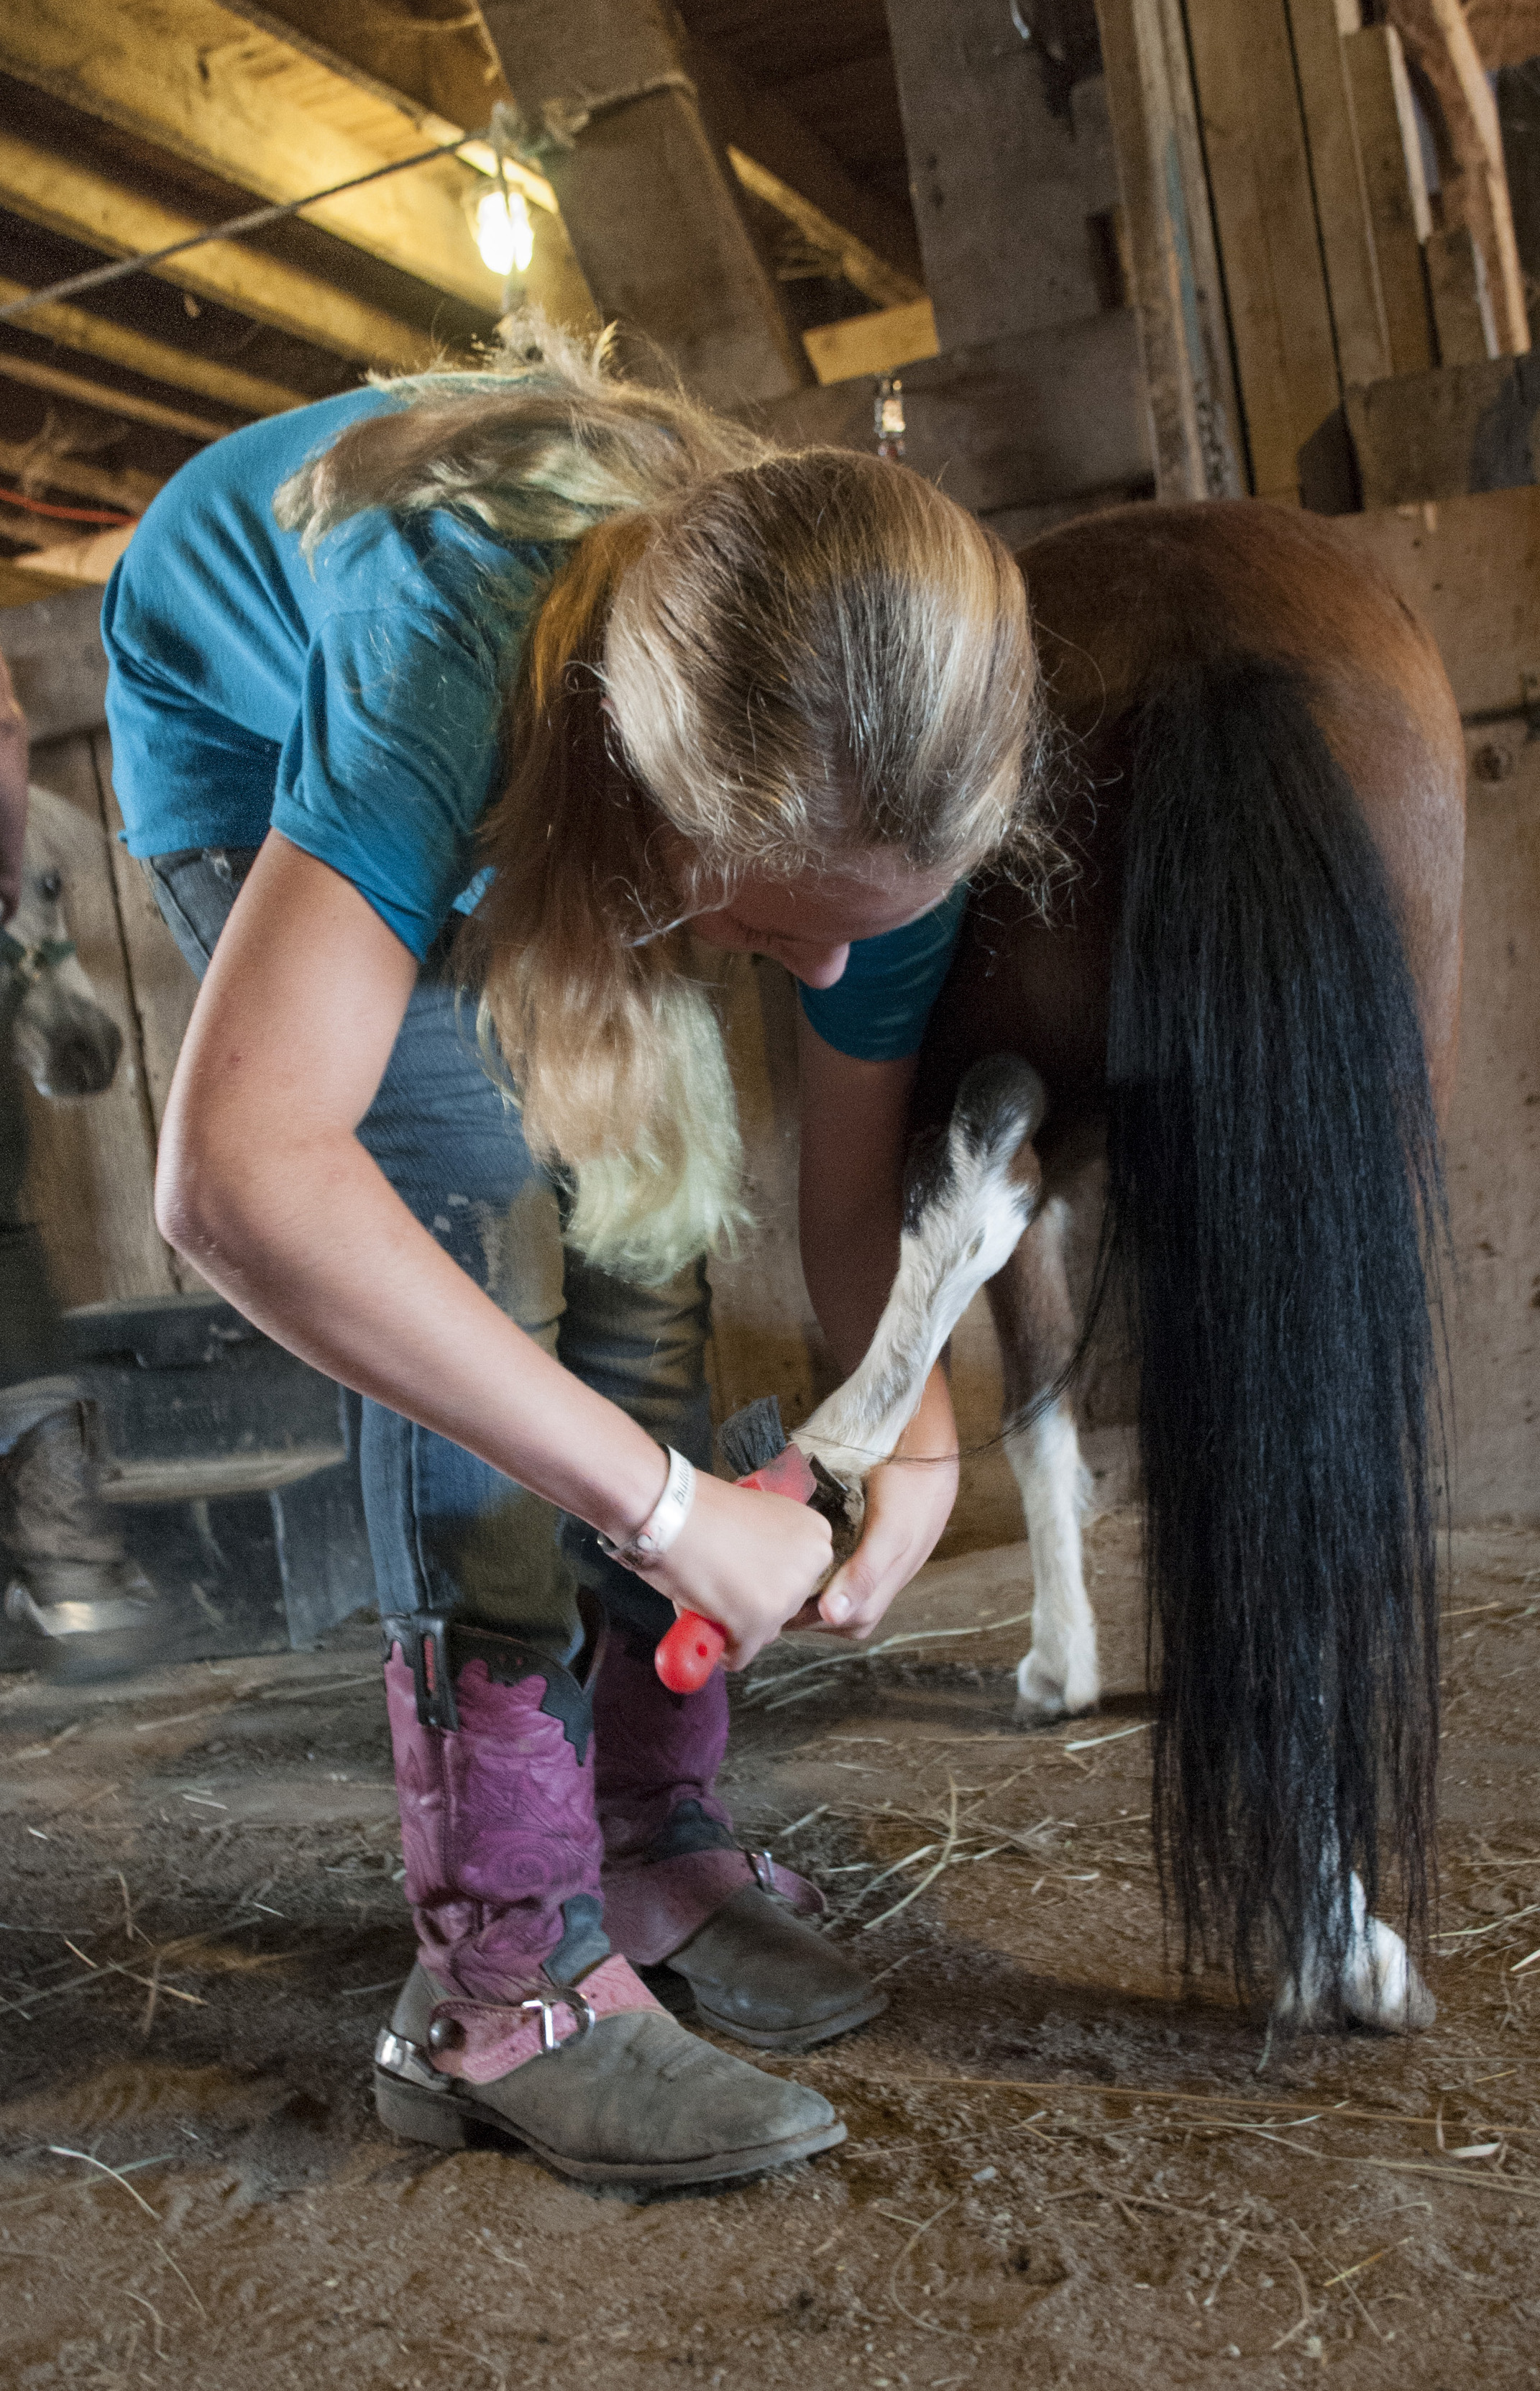 Peyton Tiedtke cleans the hooves Butterscotch of any rocks and debris after taking him on a run around the farm. Any debris that is not regularly cleared from the hooves of the horses and ponies has the potential to harm the animals (Sept. 5, 2014).